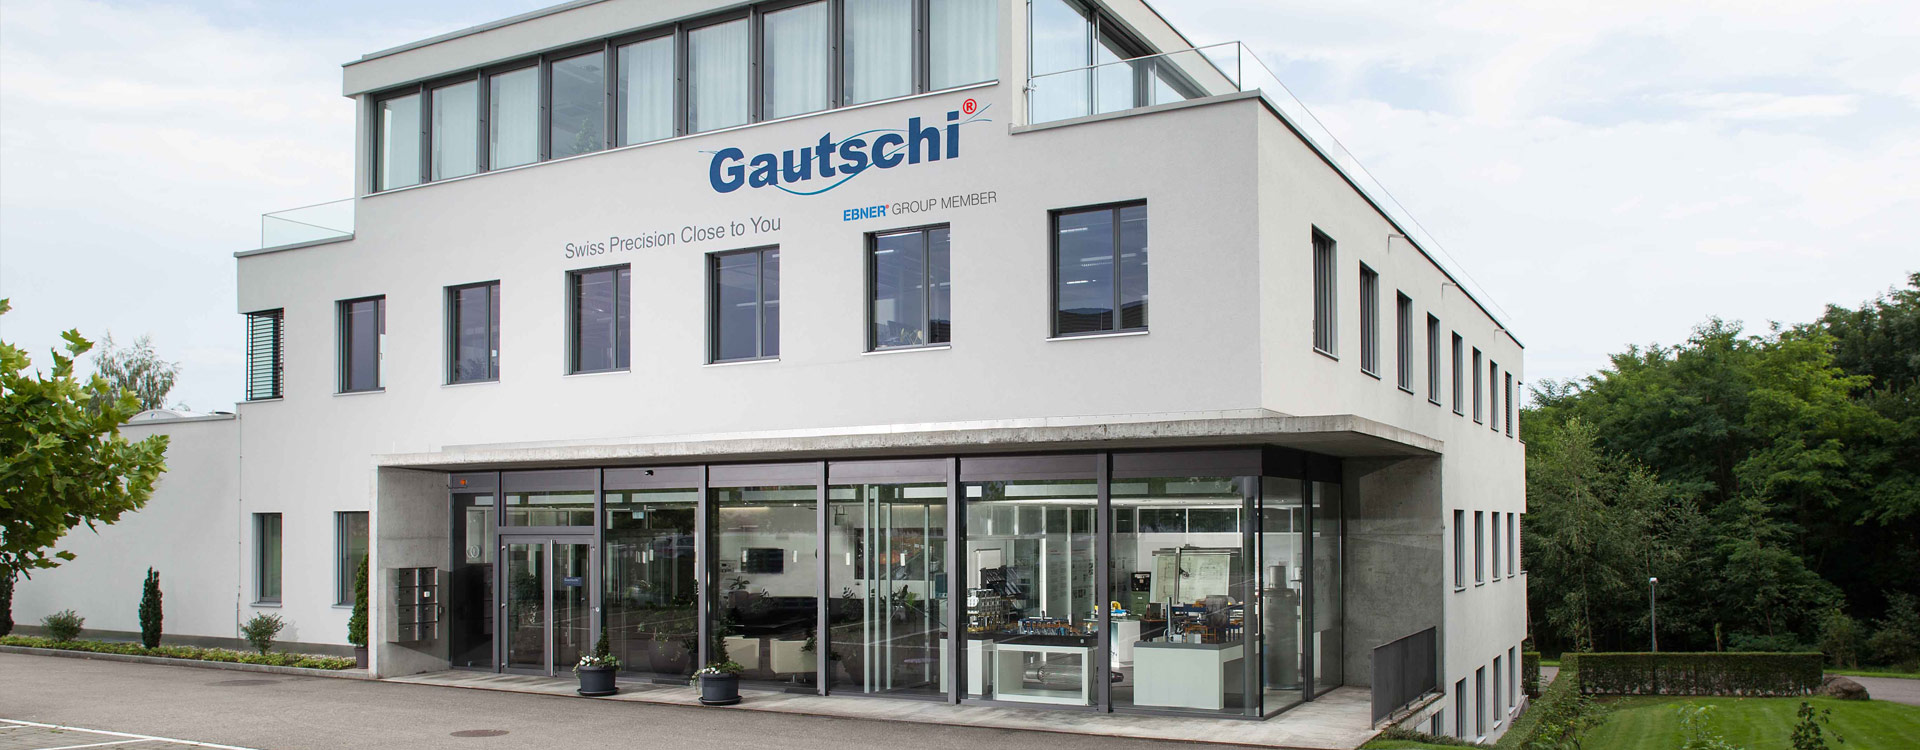 Gautschi - EBNER Group